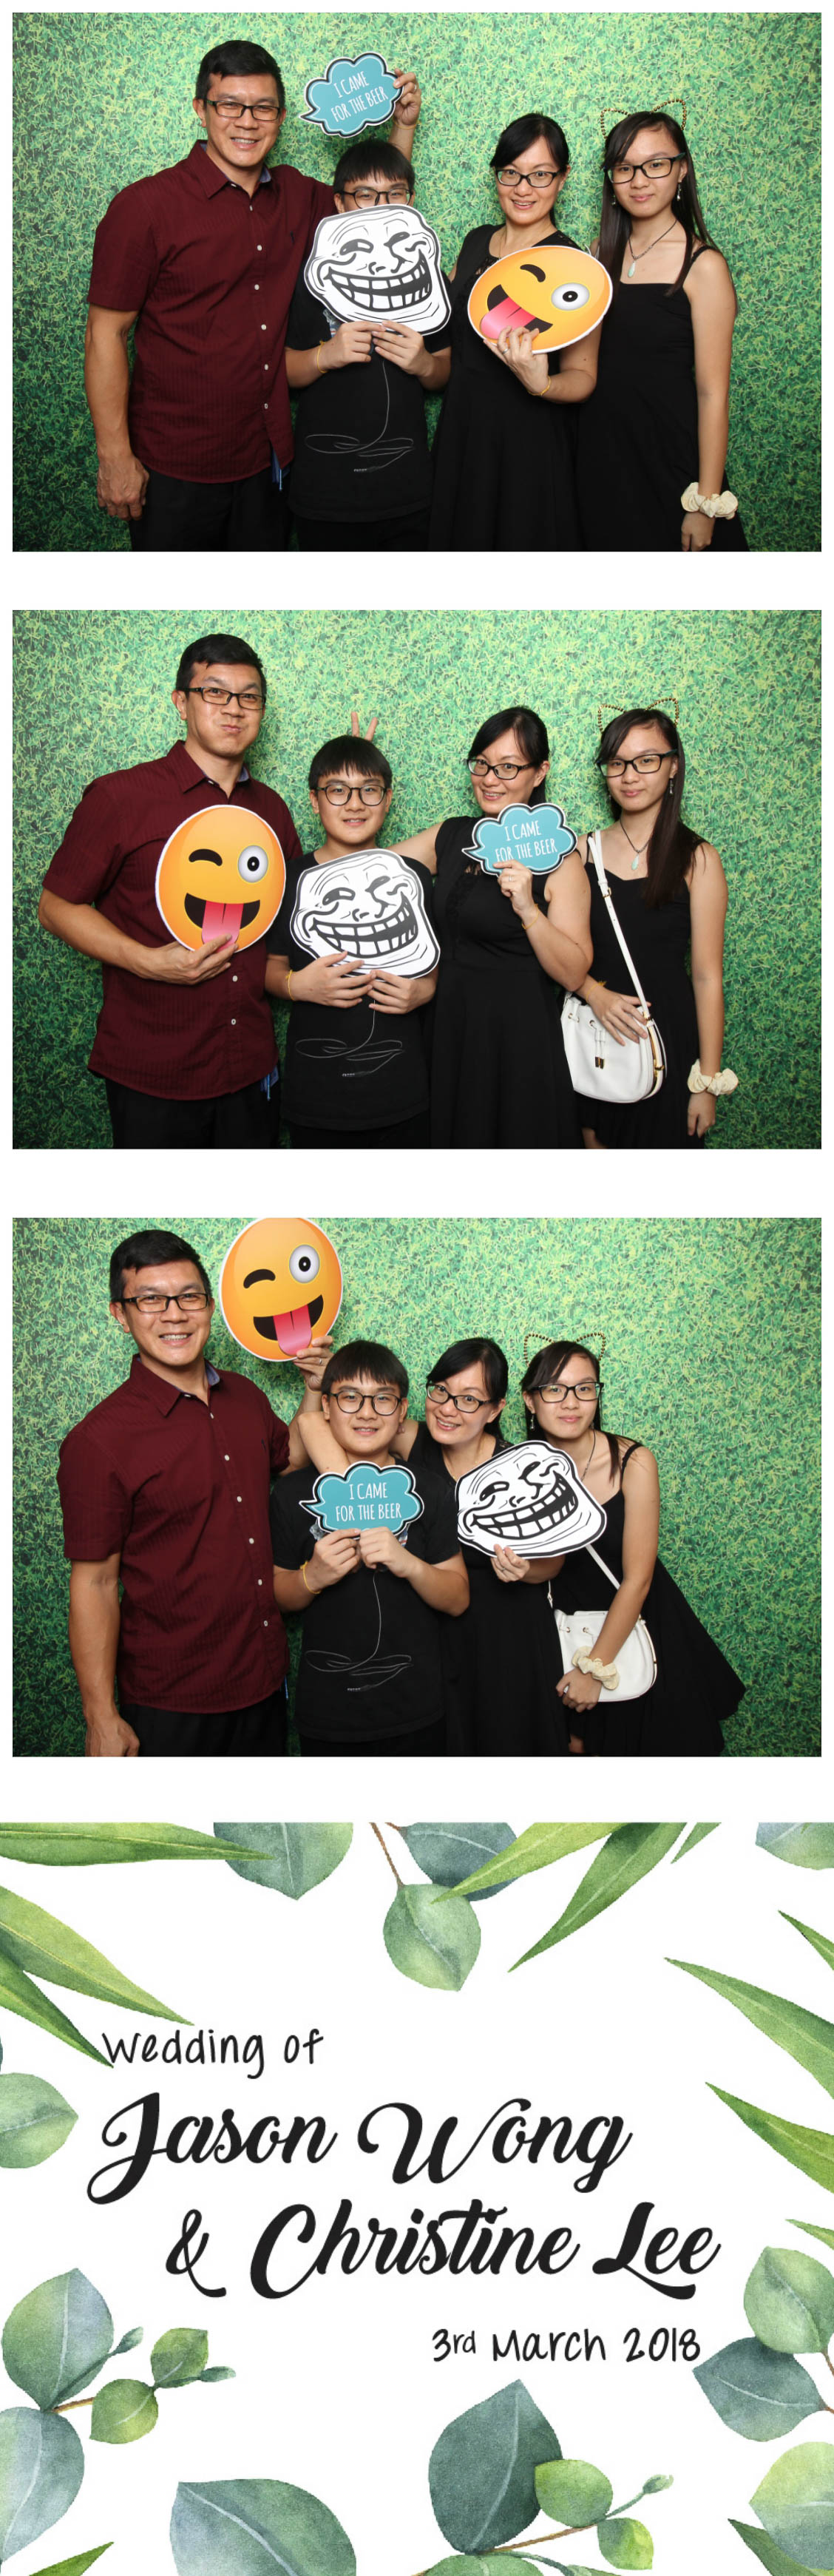 Photobooth 0302-38